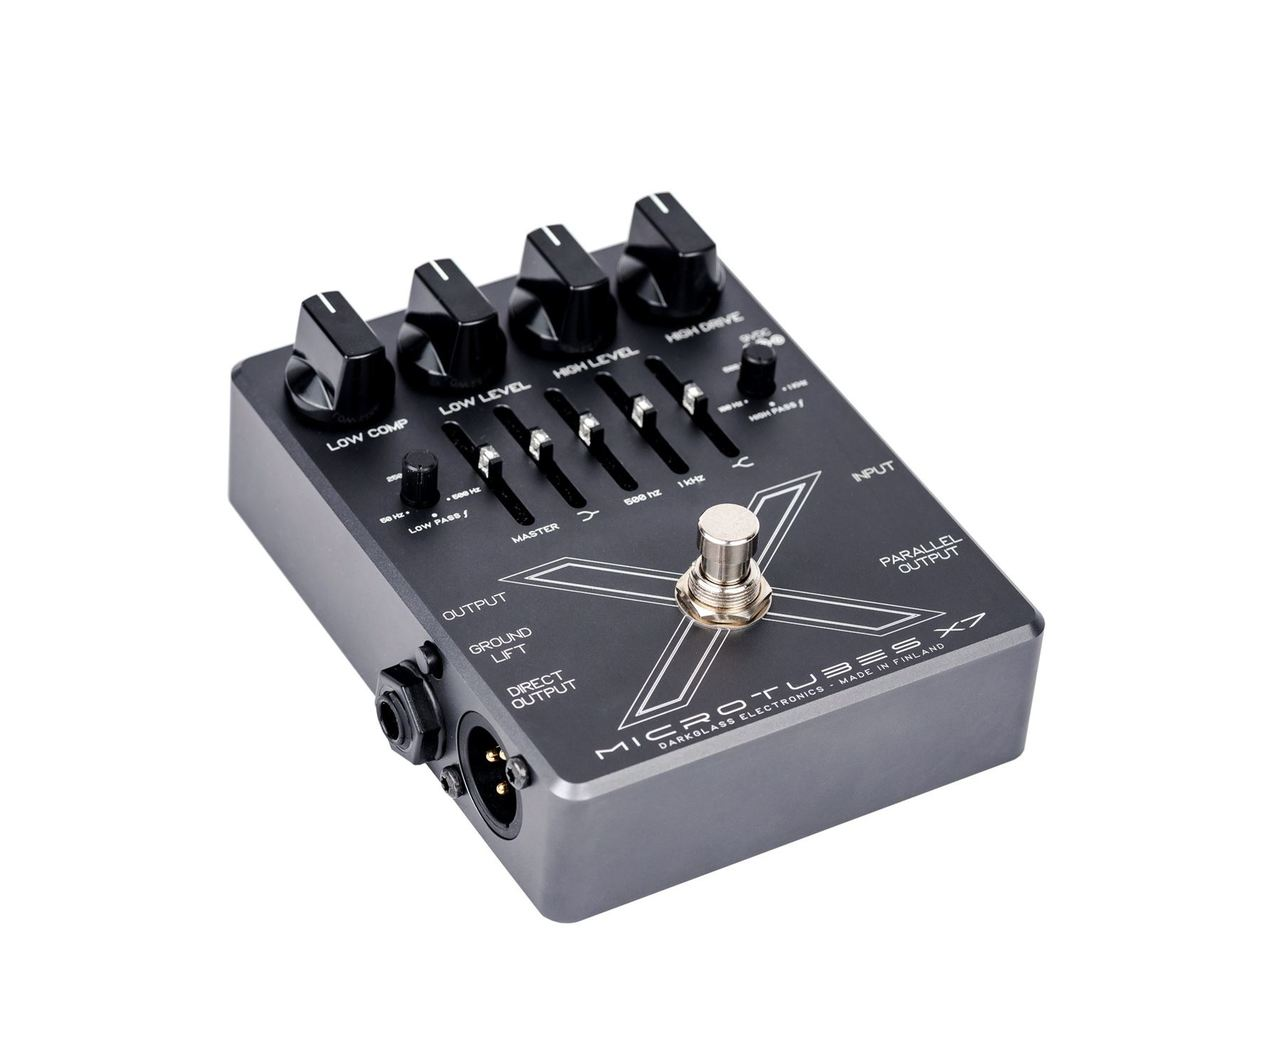 Darkglass Electronics X7 Multiband Distortion pedal w/ crossover & EQ